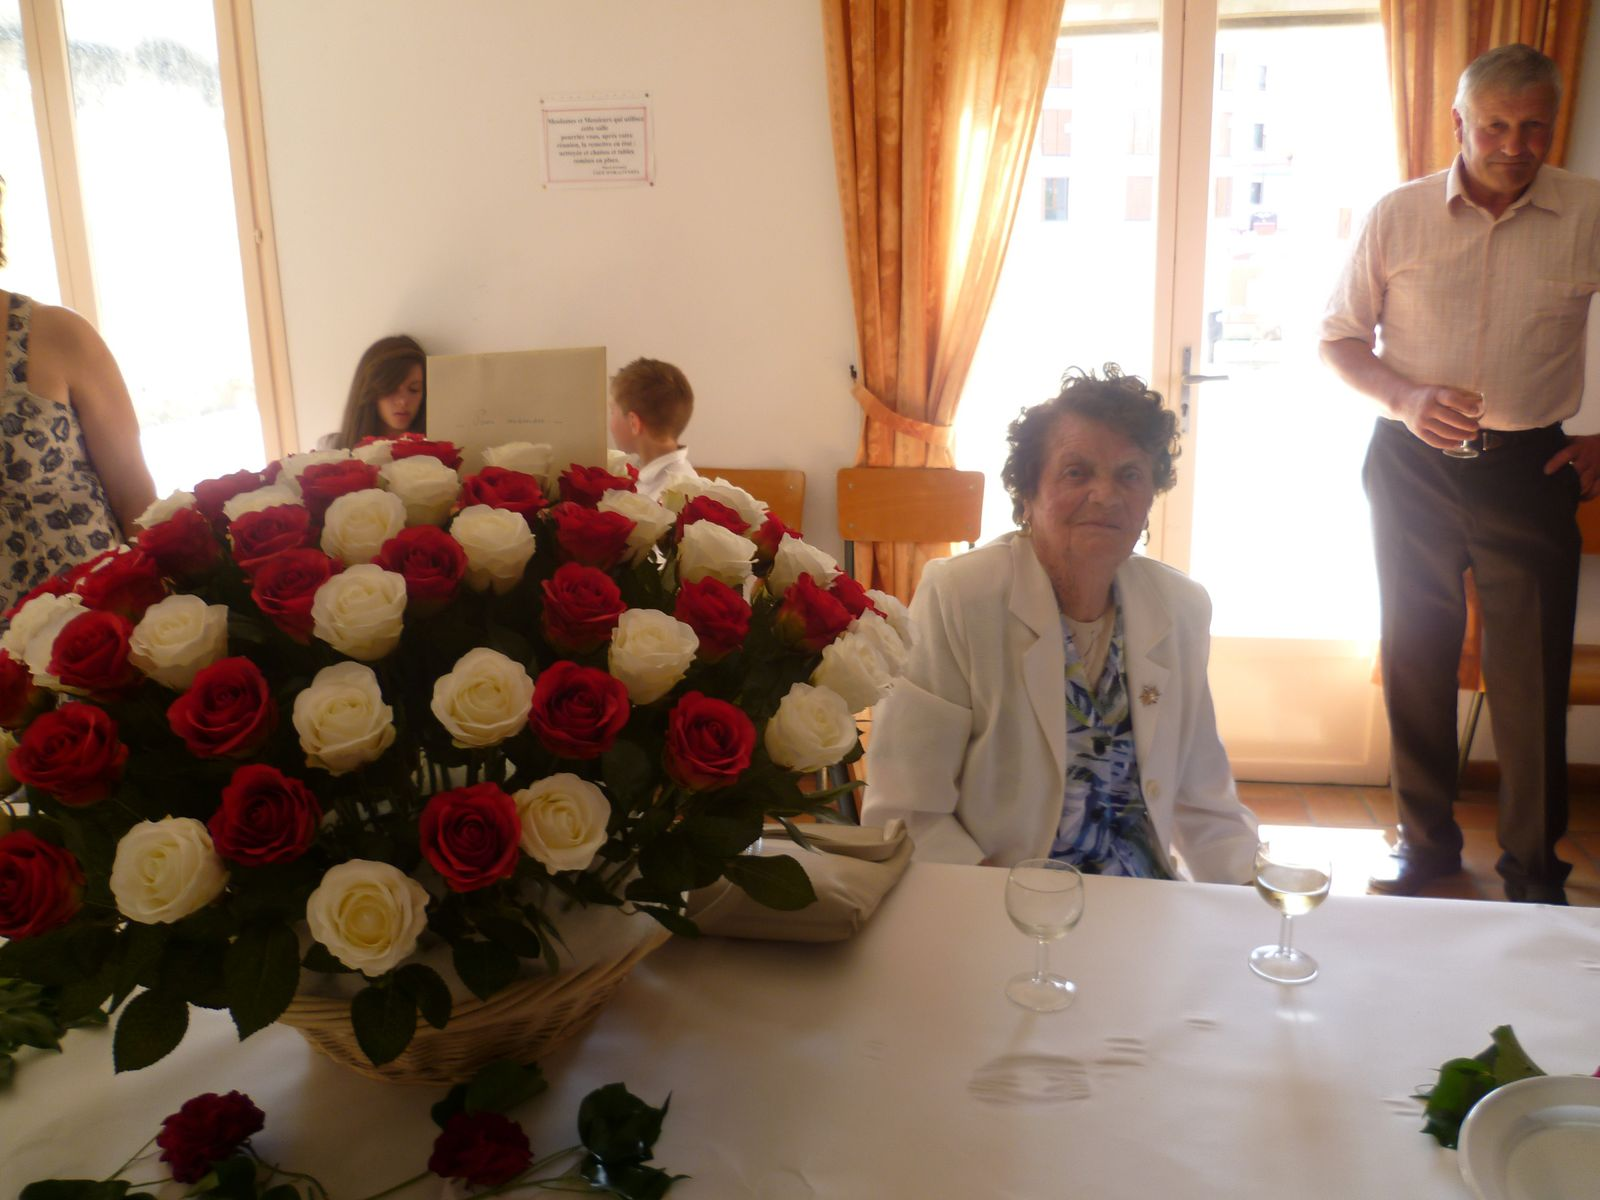 100 ans......100 roses..